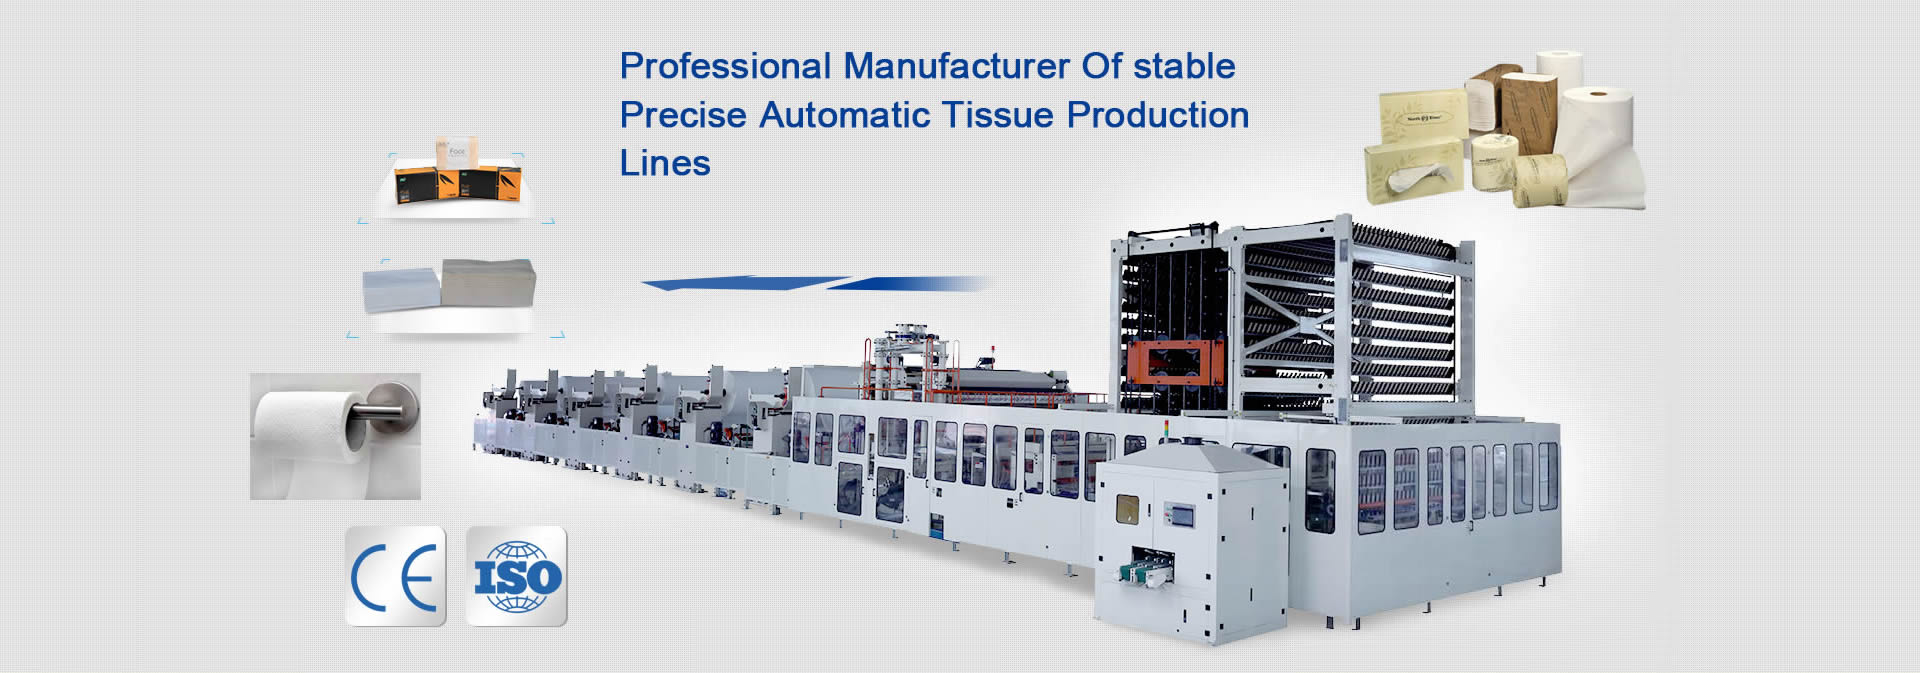 professional tissue paper making machine manufacturer of kinds of tissue production lines